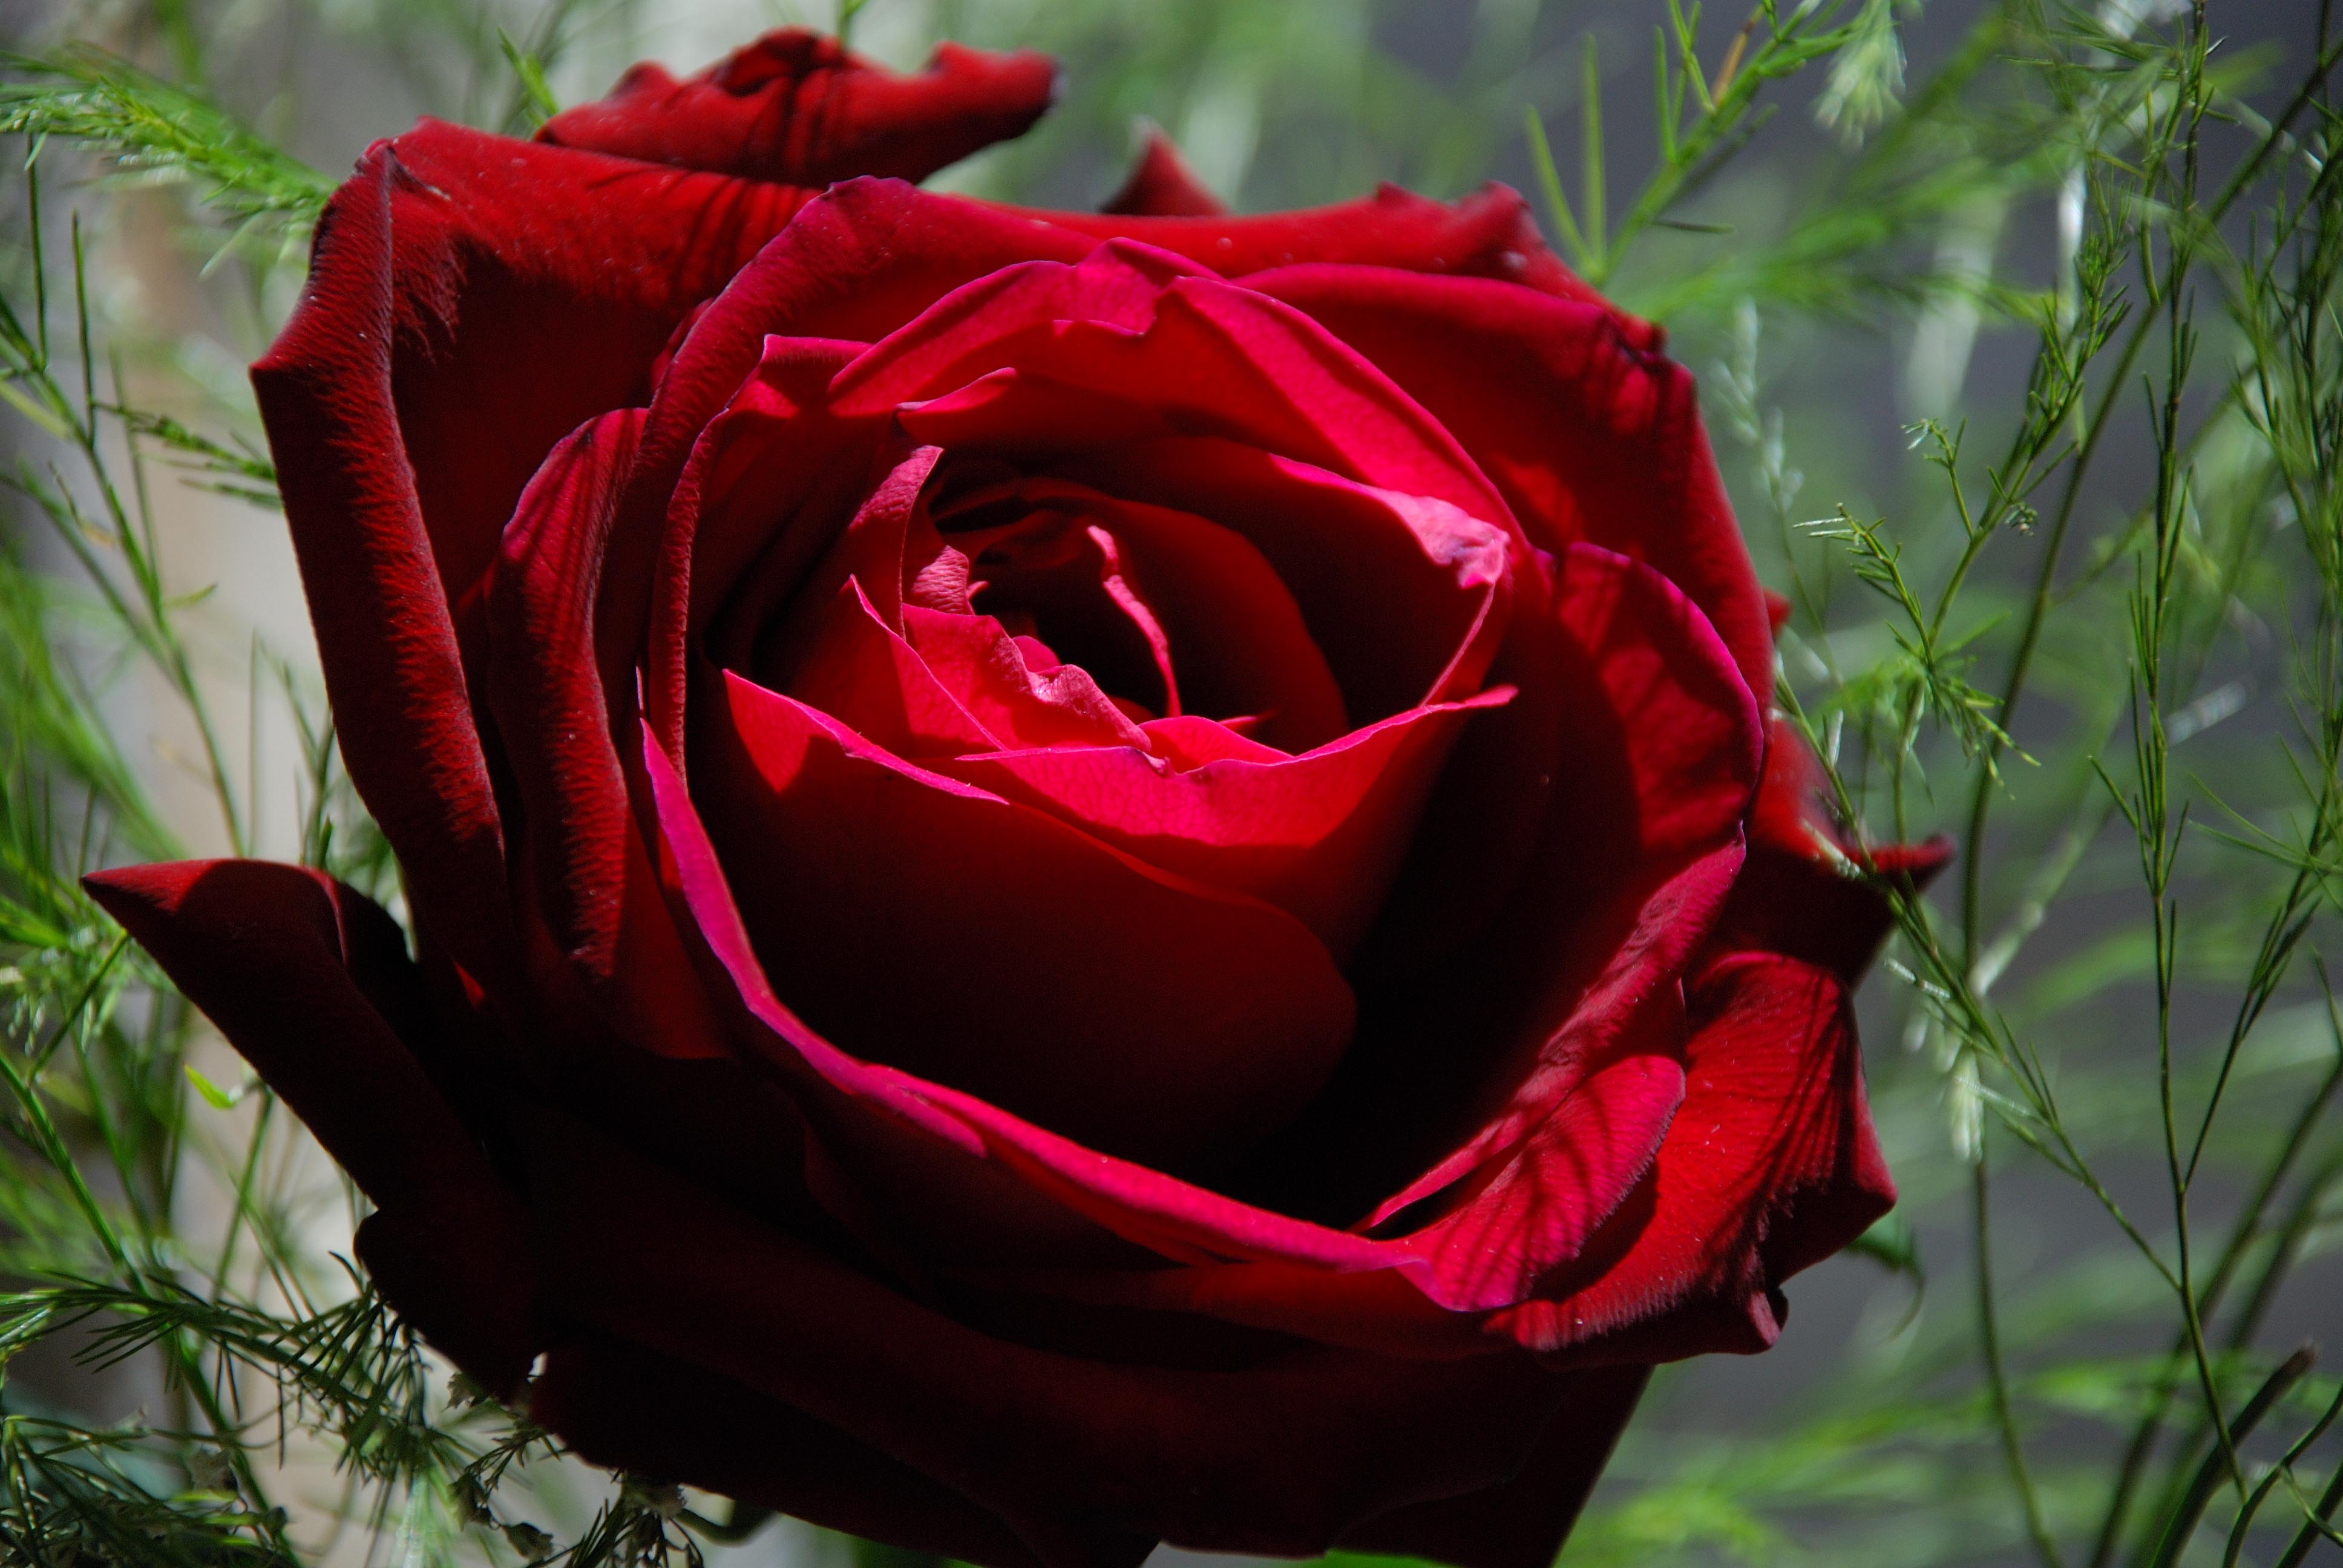 Dark Red Rose Wallpaper photos of Beautiful Red Rose HD Wallpapers by 3872x2592